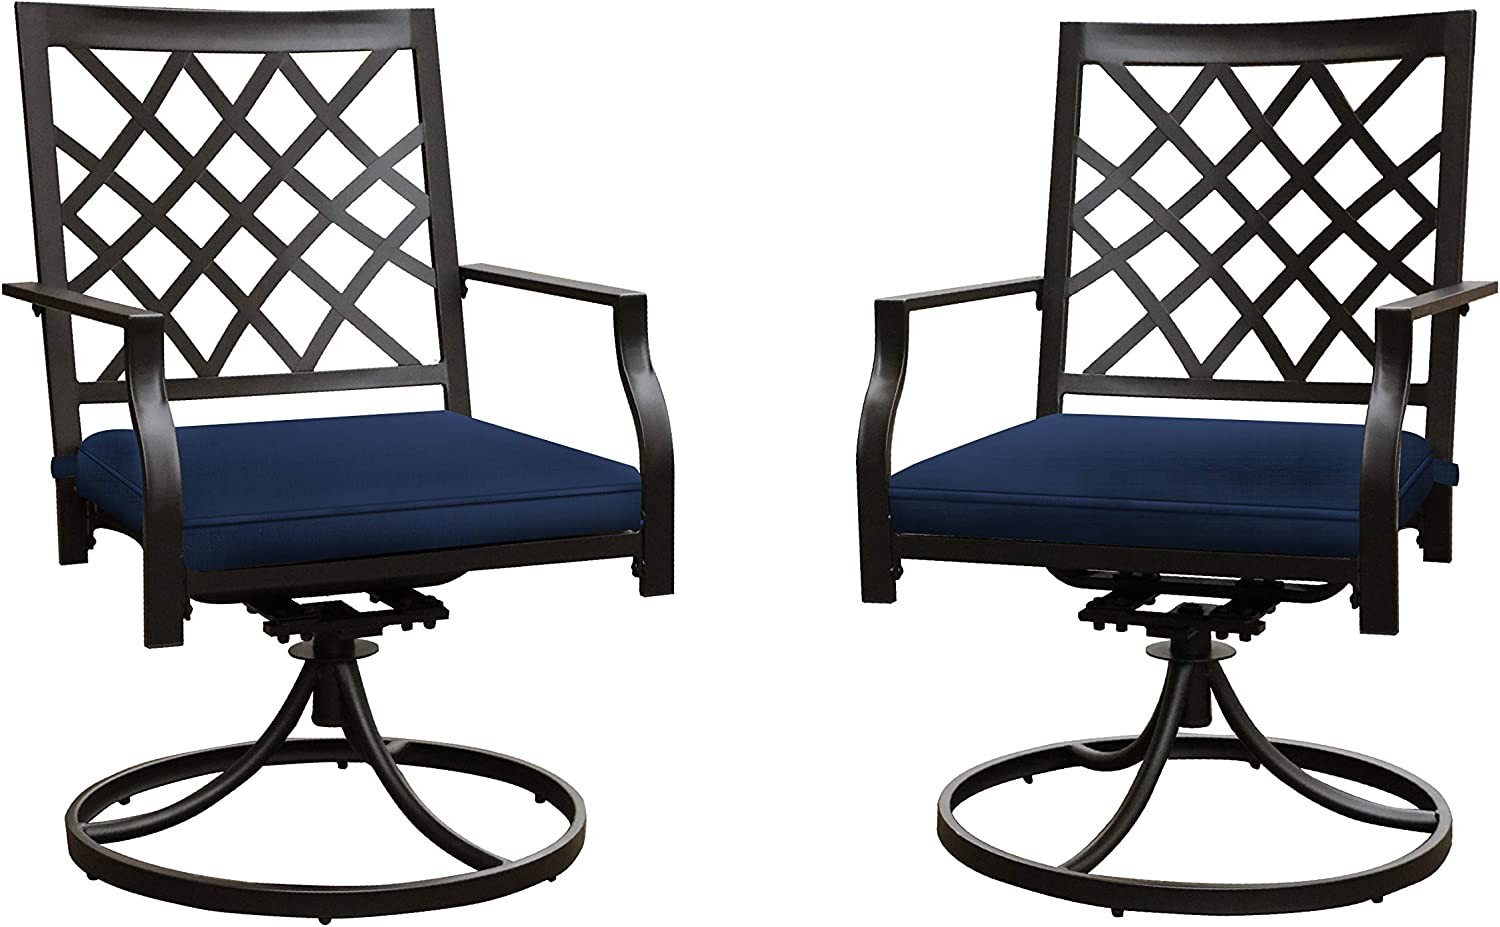 LOKATSE HOME Patio Swivel Rocker Furniture Metal Outdoor Dining Chairs with Cushion Set of 2, 2 Blue